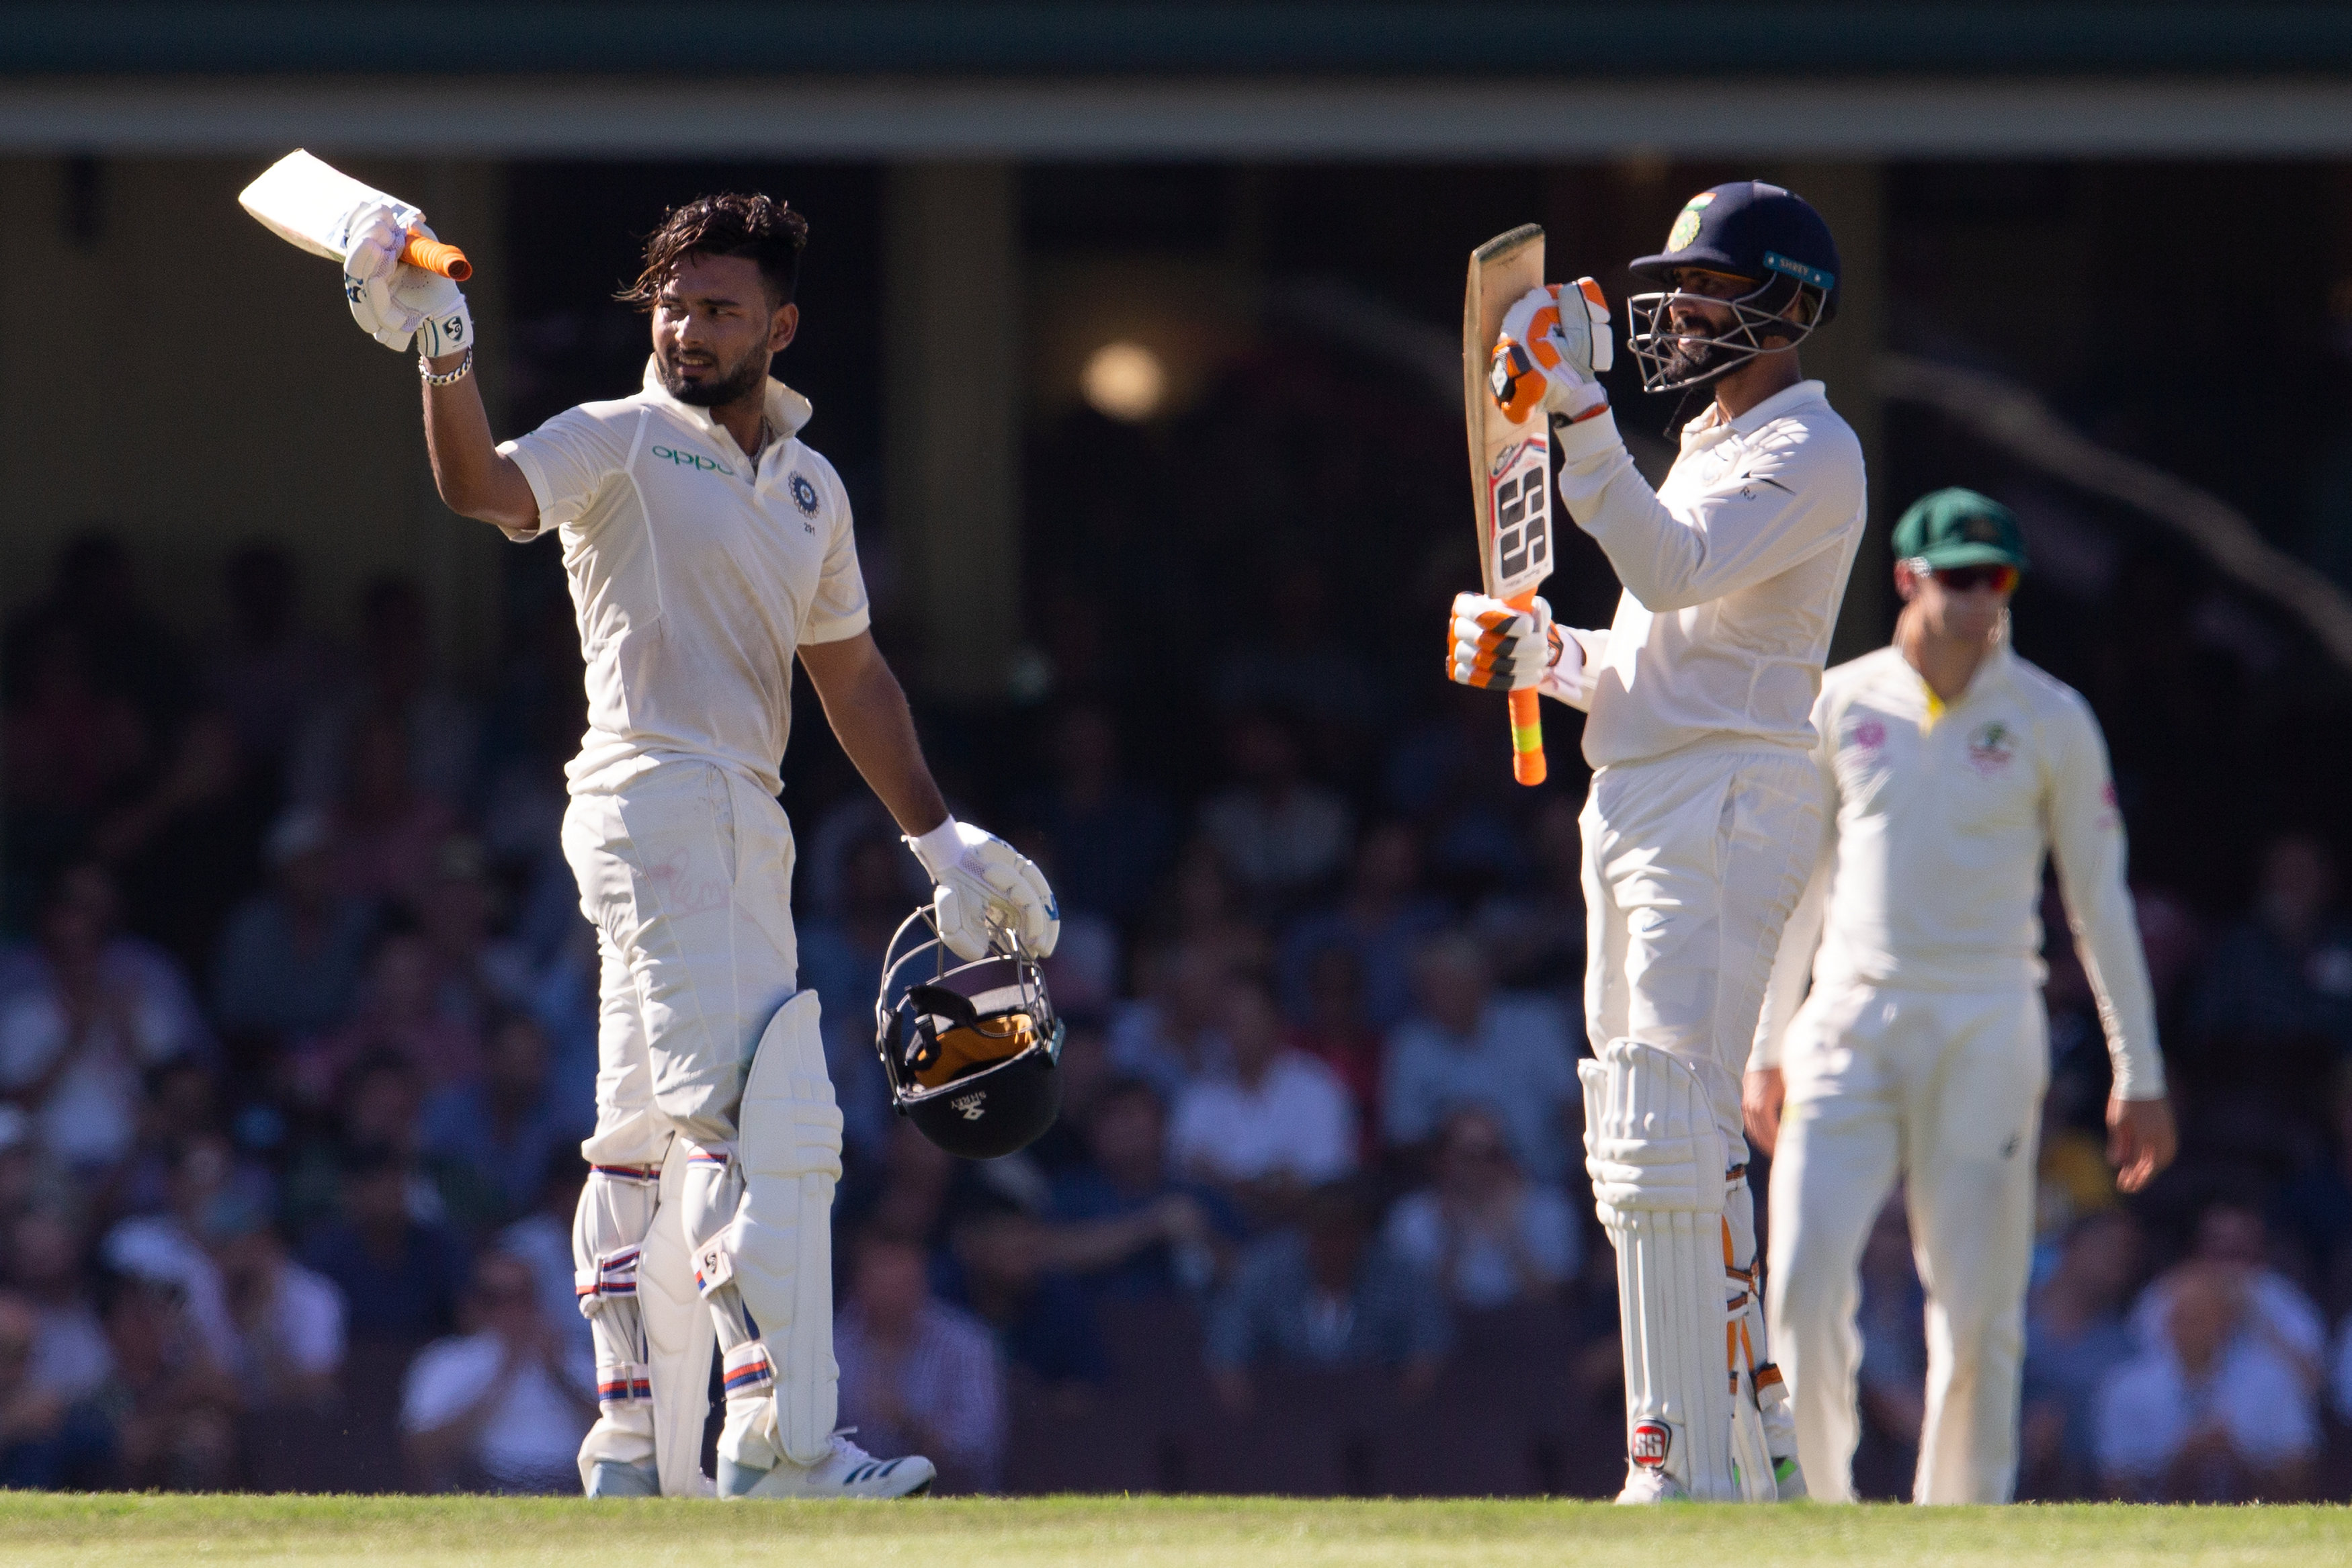 India's Rishabh Pant (L) celebrates scoring his 150 runs with his teammate Ravindra Jadeja on day two of the fourth test match between Australia and India at the SCG in Sydney, Australia, January 4, 2019. Reuters